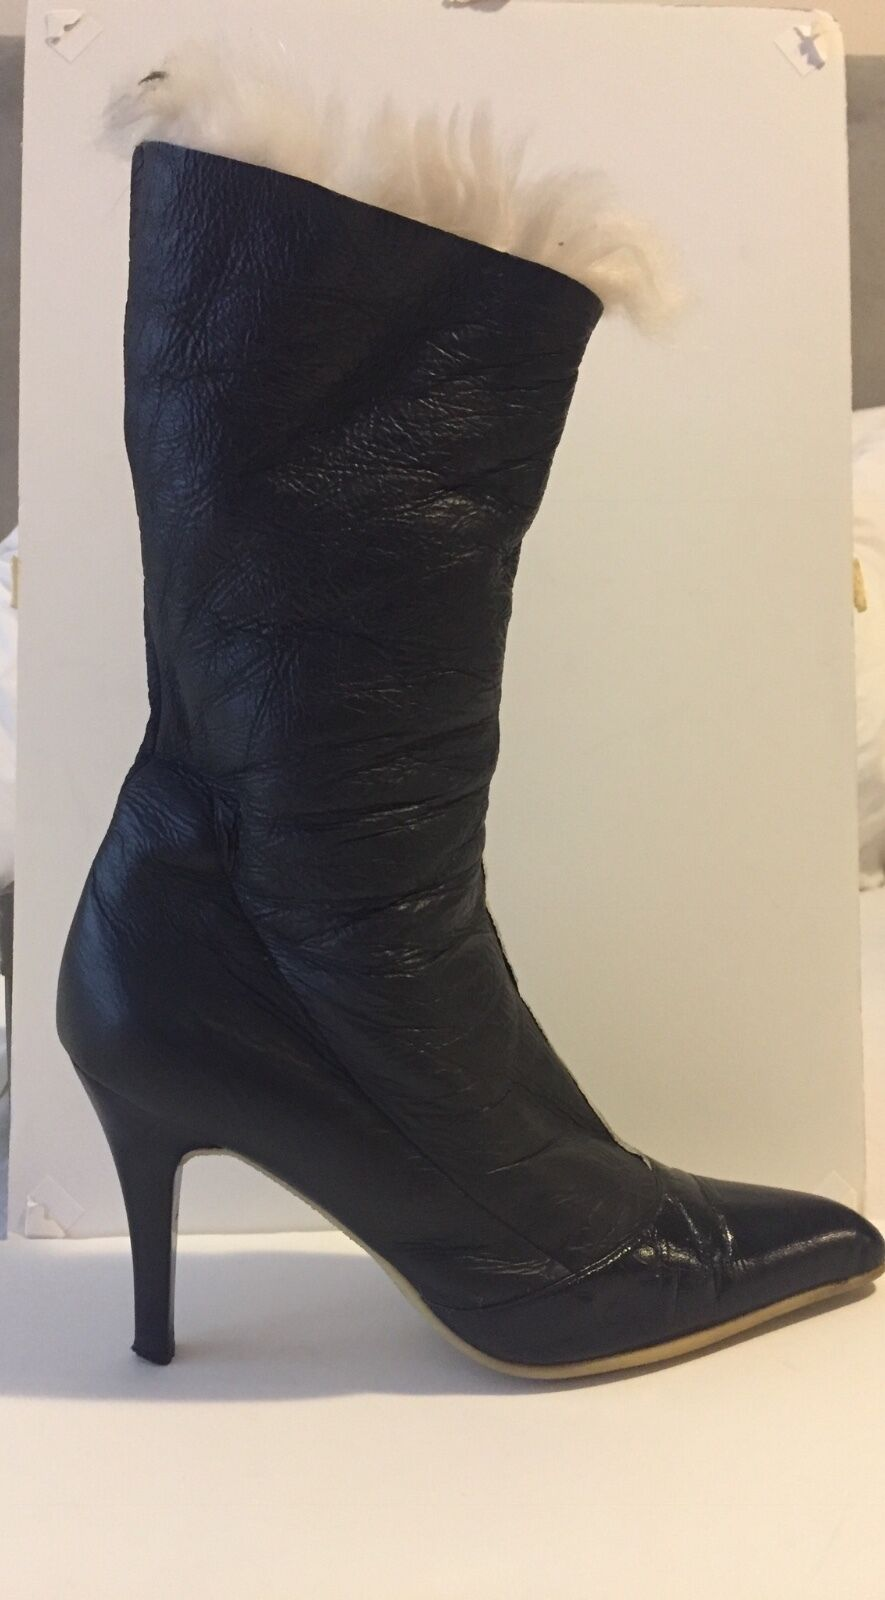 Vicini Black Shearling-lined Boots Made in Italy Size 37